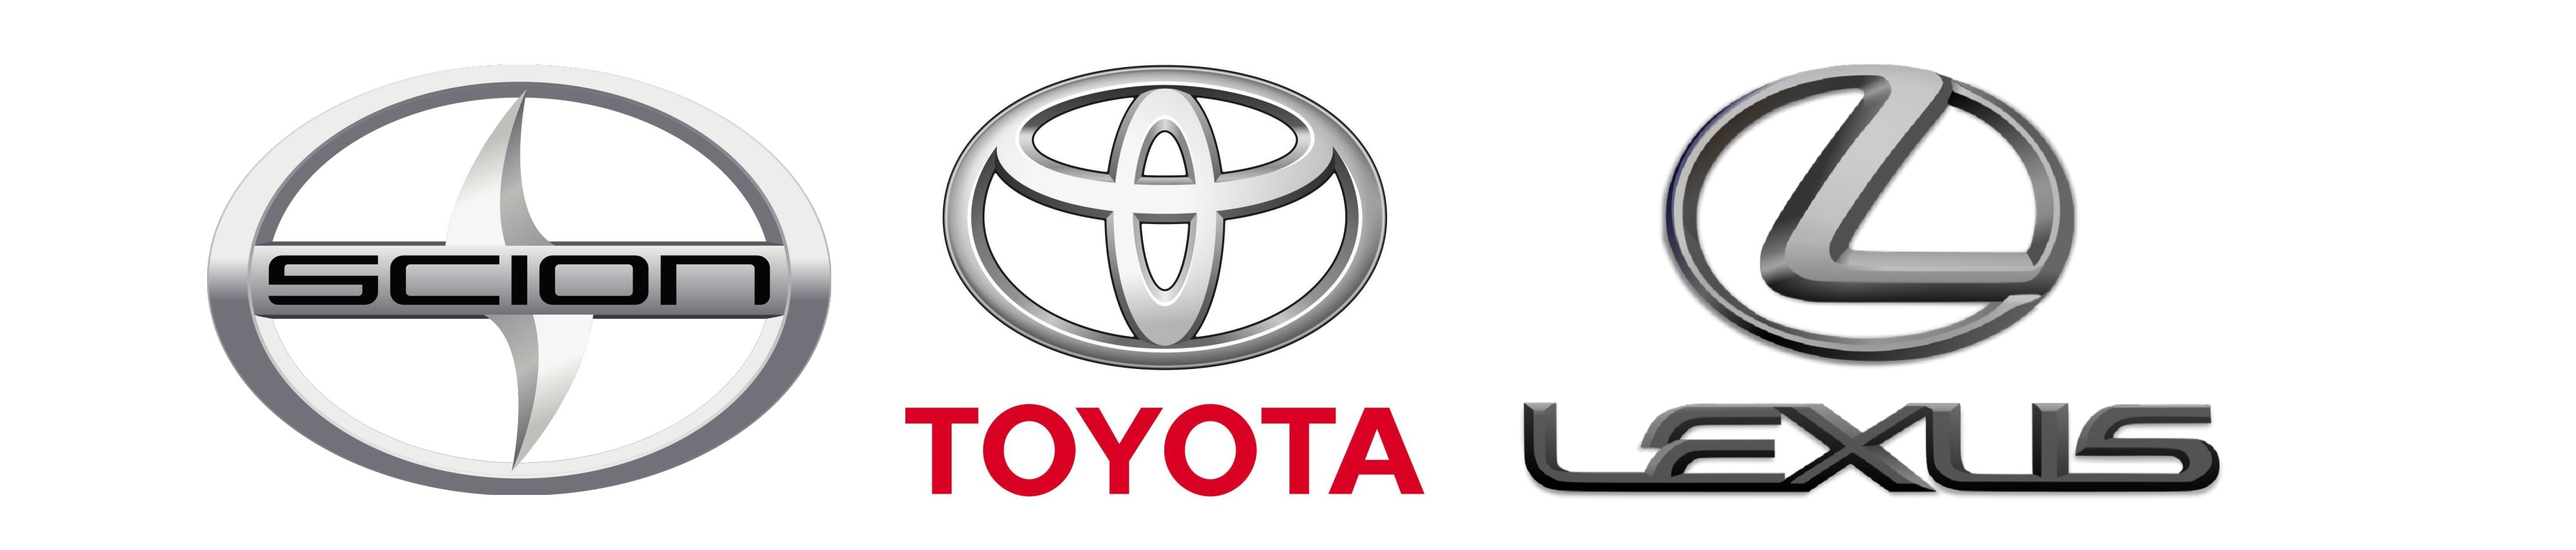 Lexus Tops Vehicle Dependability Study Toyota and Scion Show